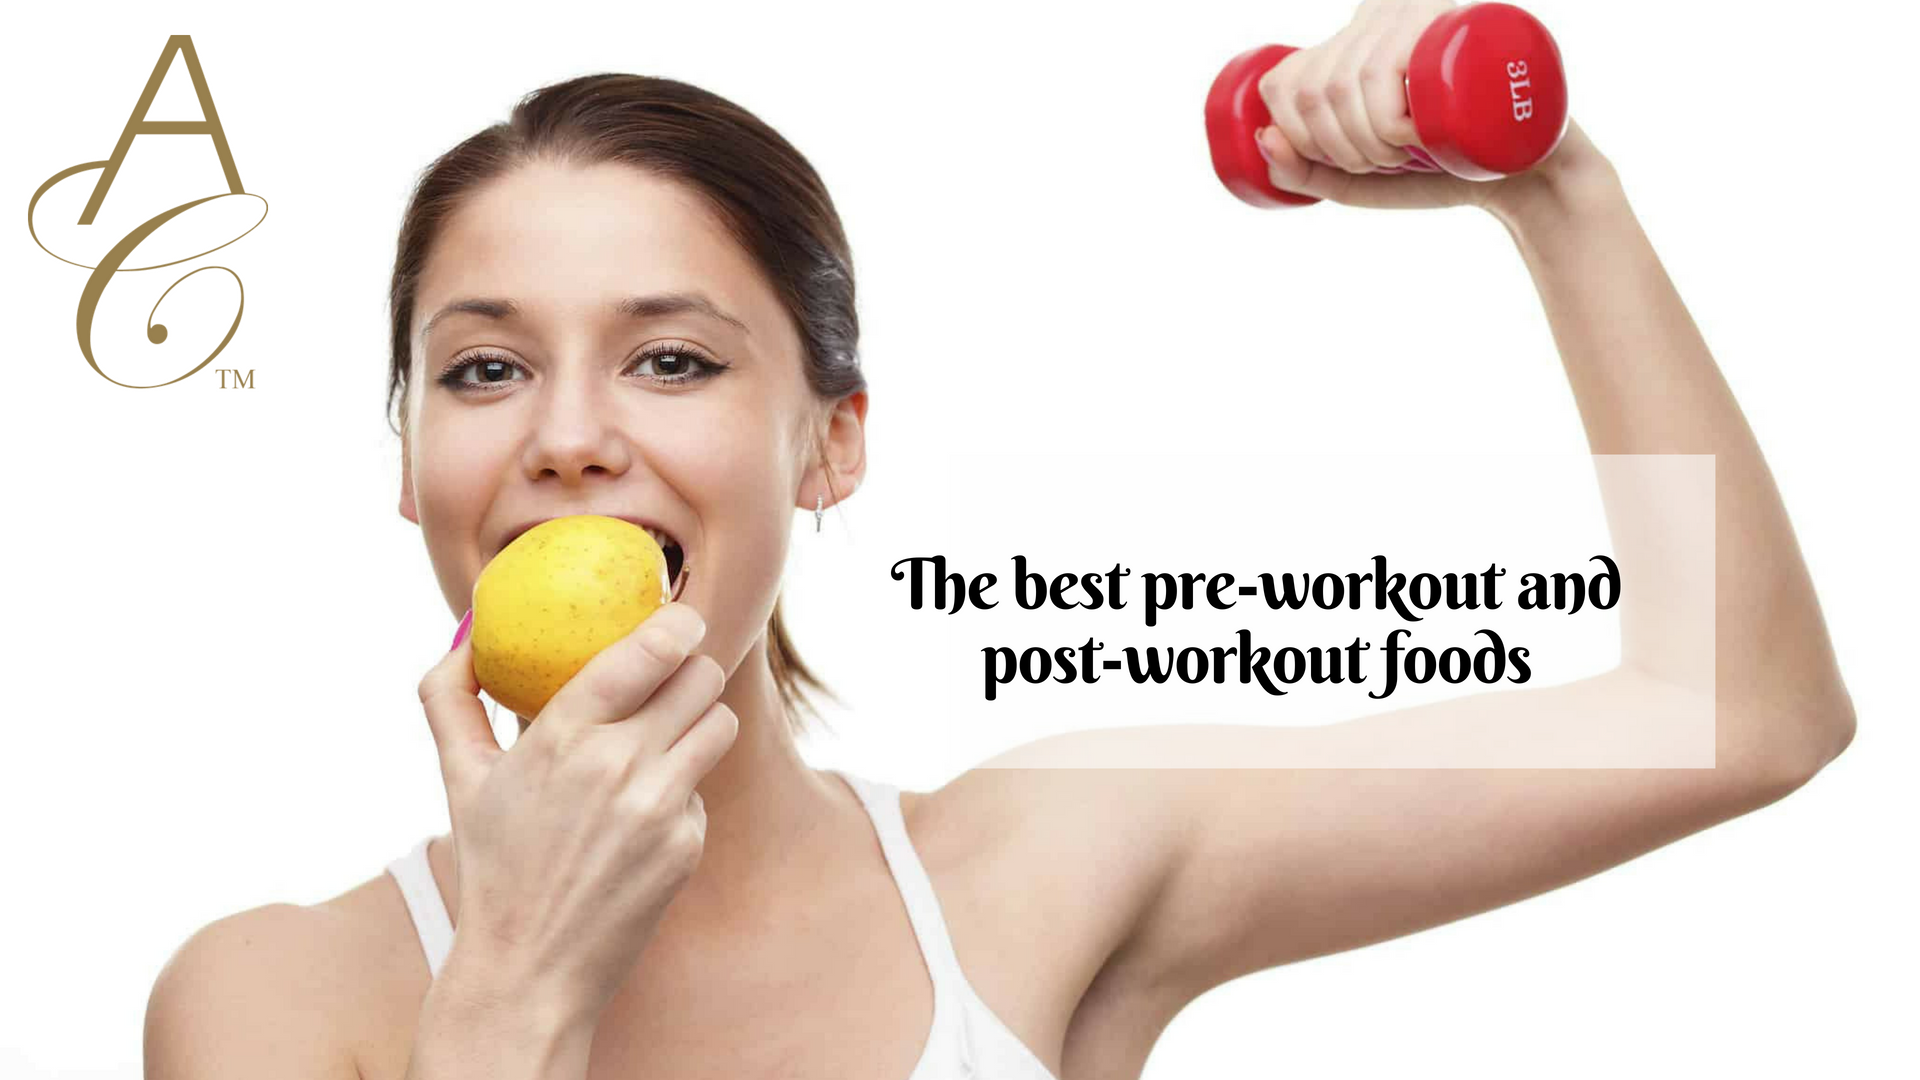 The best pre-workout and post-workout foods